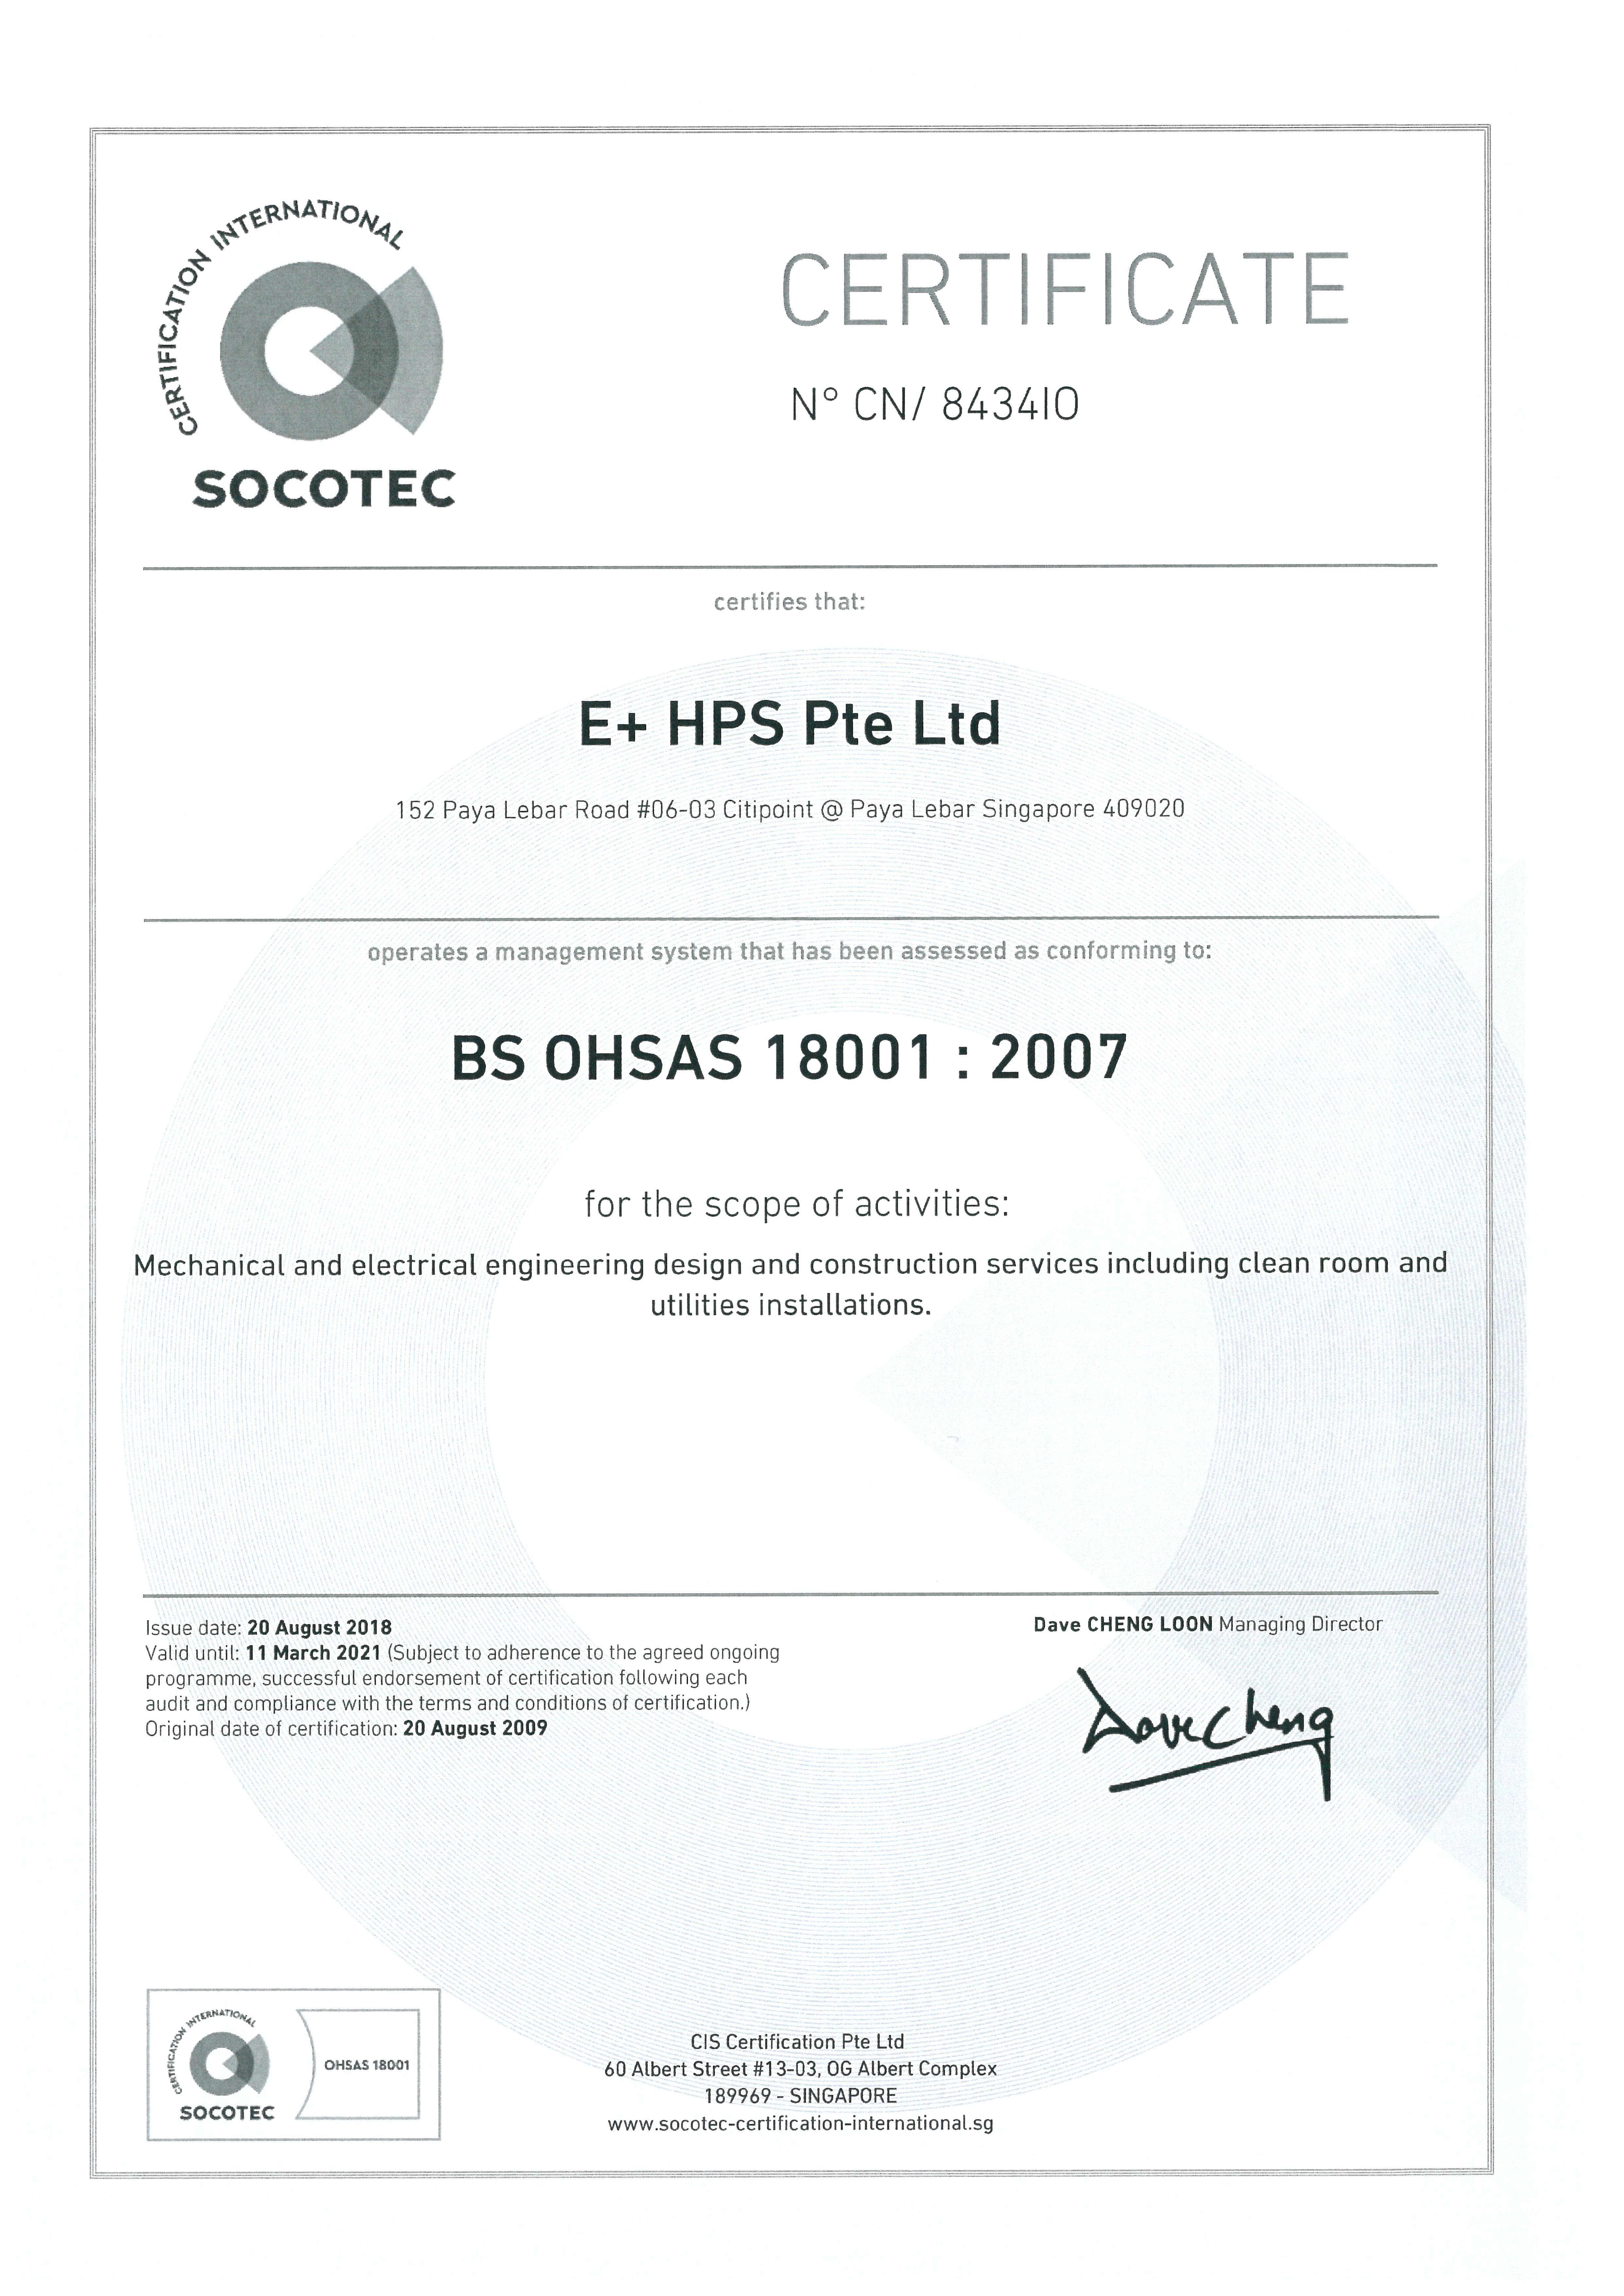 Swell Certification E Hps Facility Engineering Solutions Singapore Wiring Digital Resources Pelapshebarightsorg